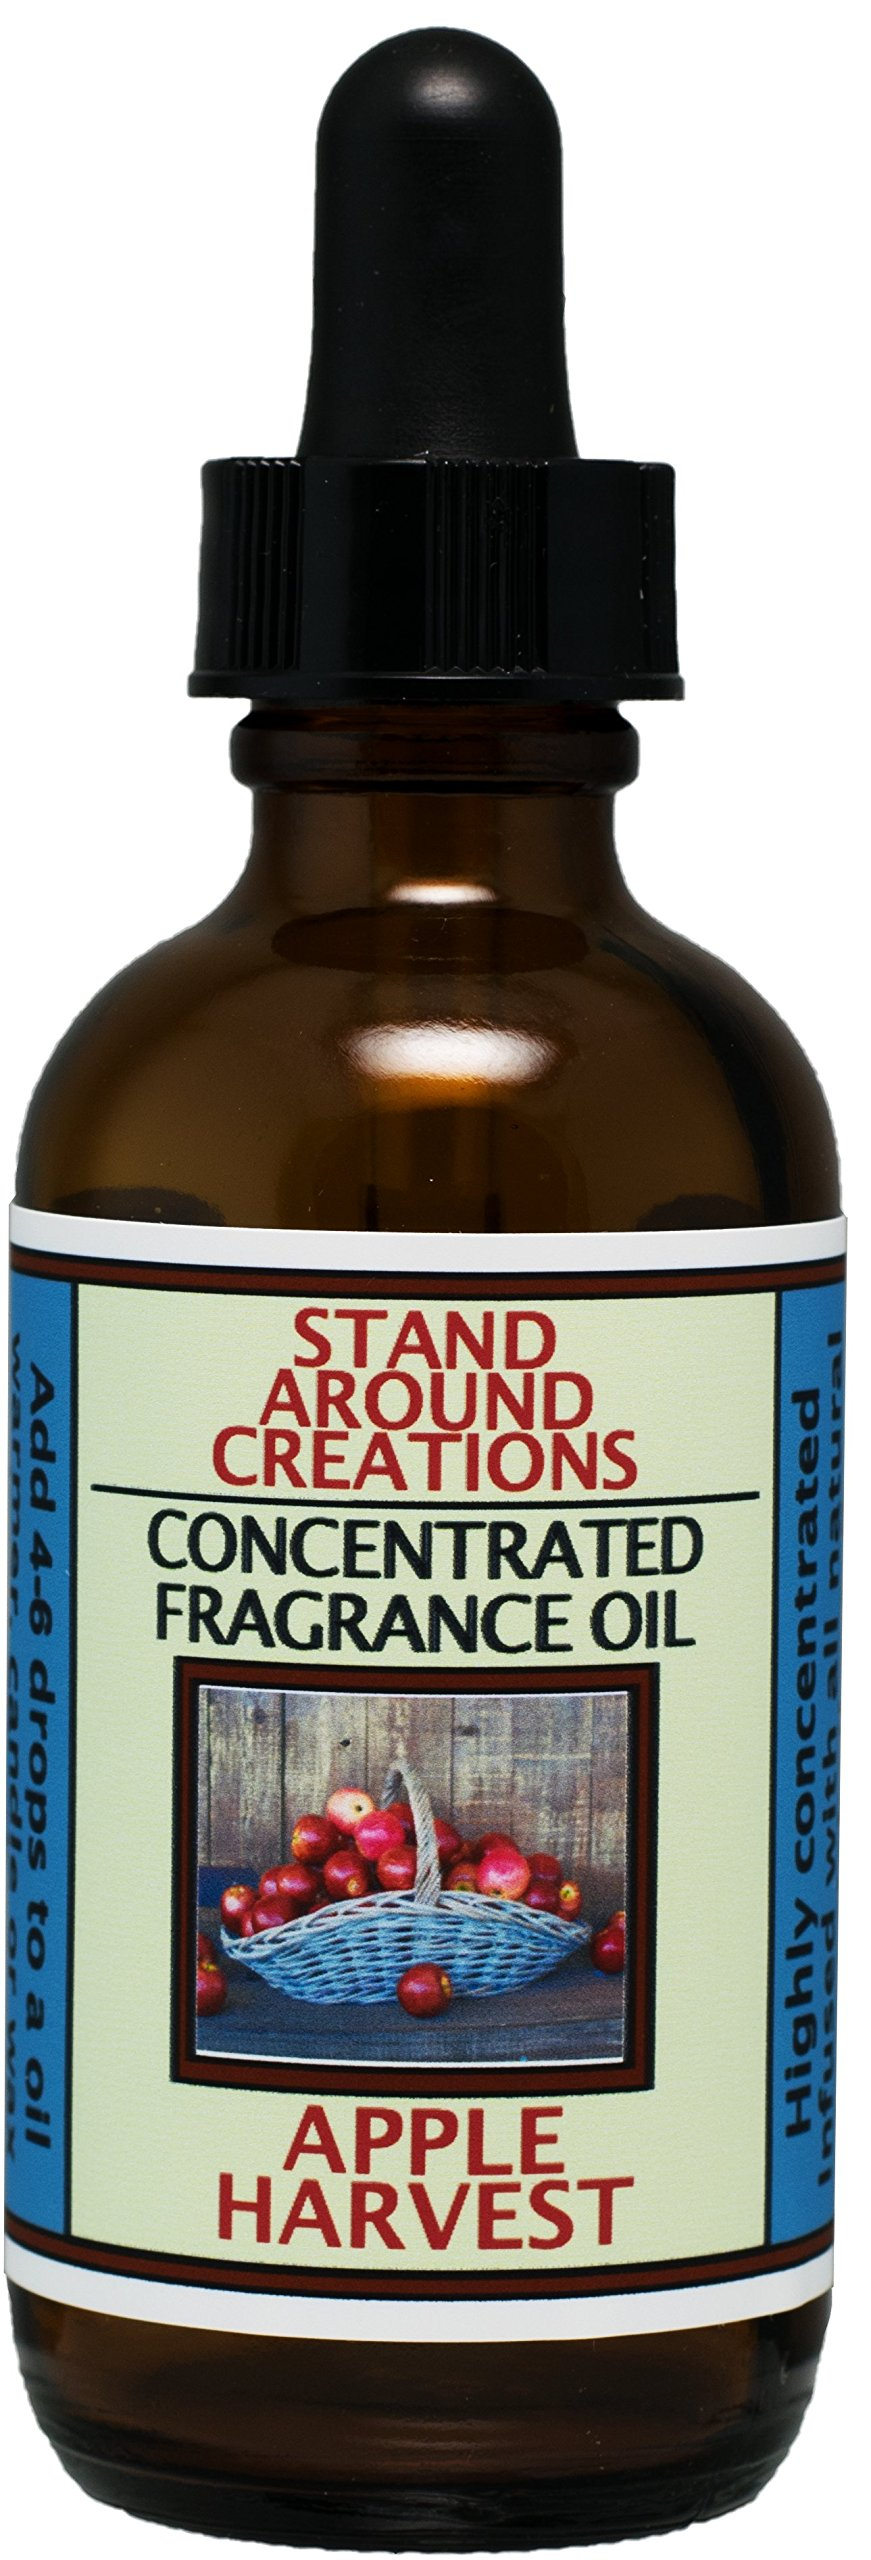 Concentrated Fragrance Oil - Apple Harvest: A ripe apple fragrance w/just a touch of spice - Cinnamon, nutmeg, clove, orange. Infused w/Essential oils.(2 fl.oz.)